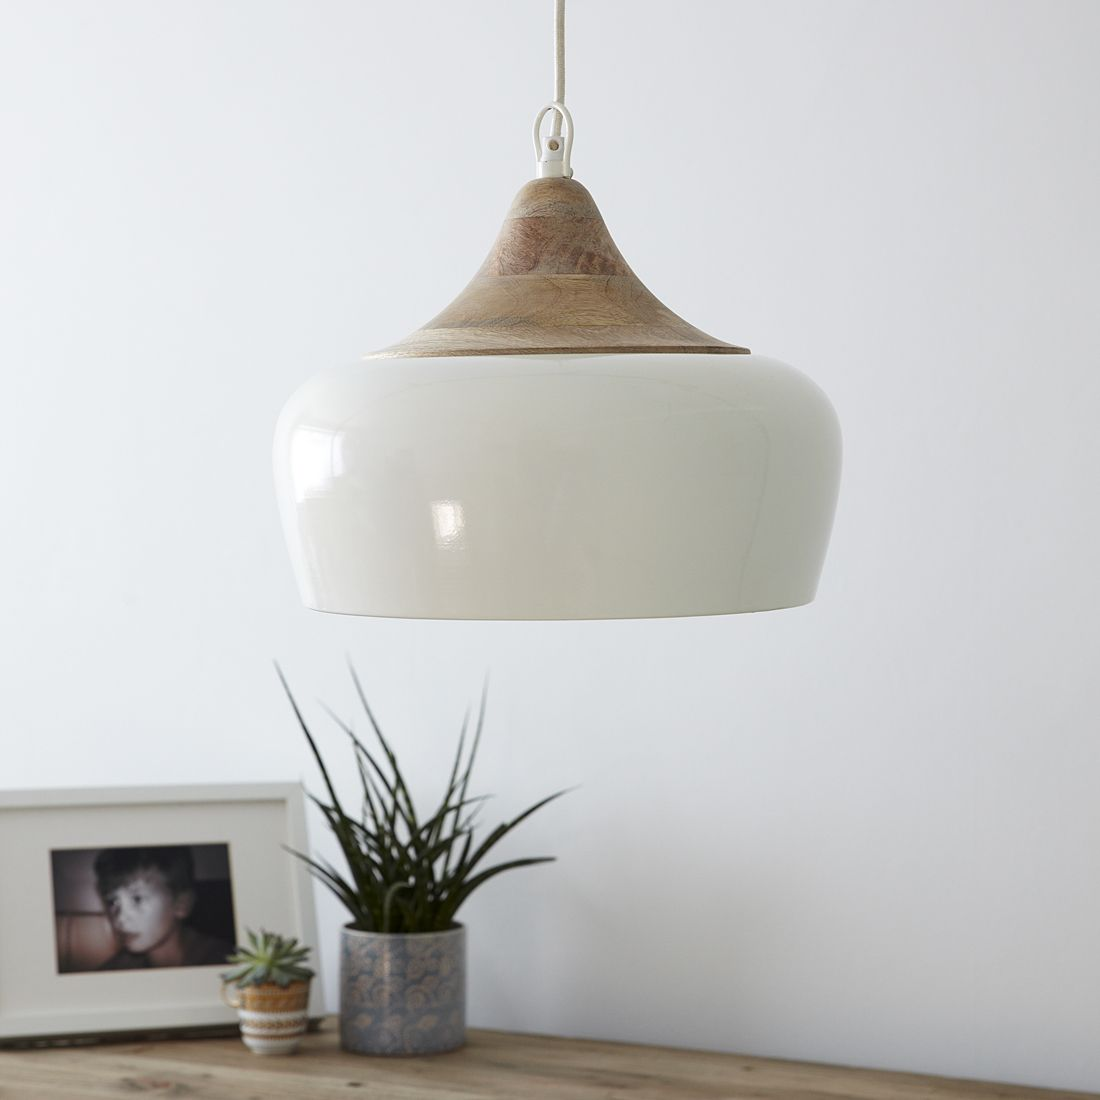 Cream Metal Pendant Light With Wooden Top And Black And White Cord Ceiling Lights Metal Pendant Light Pendant Light